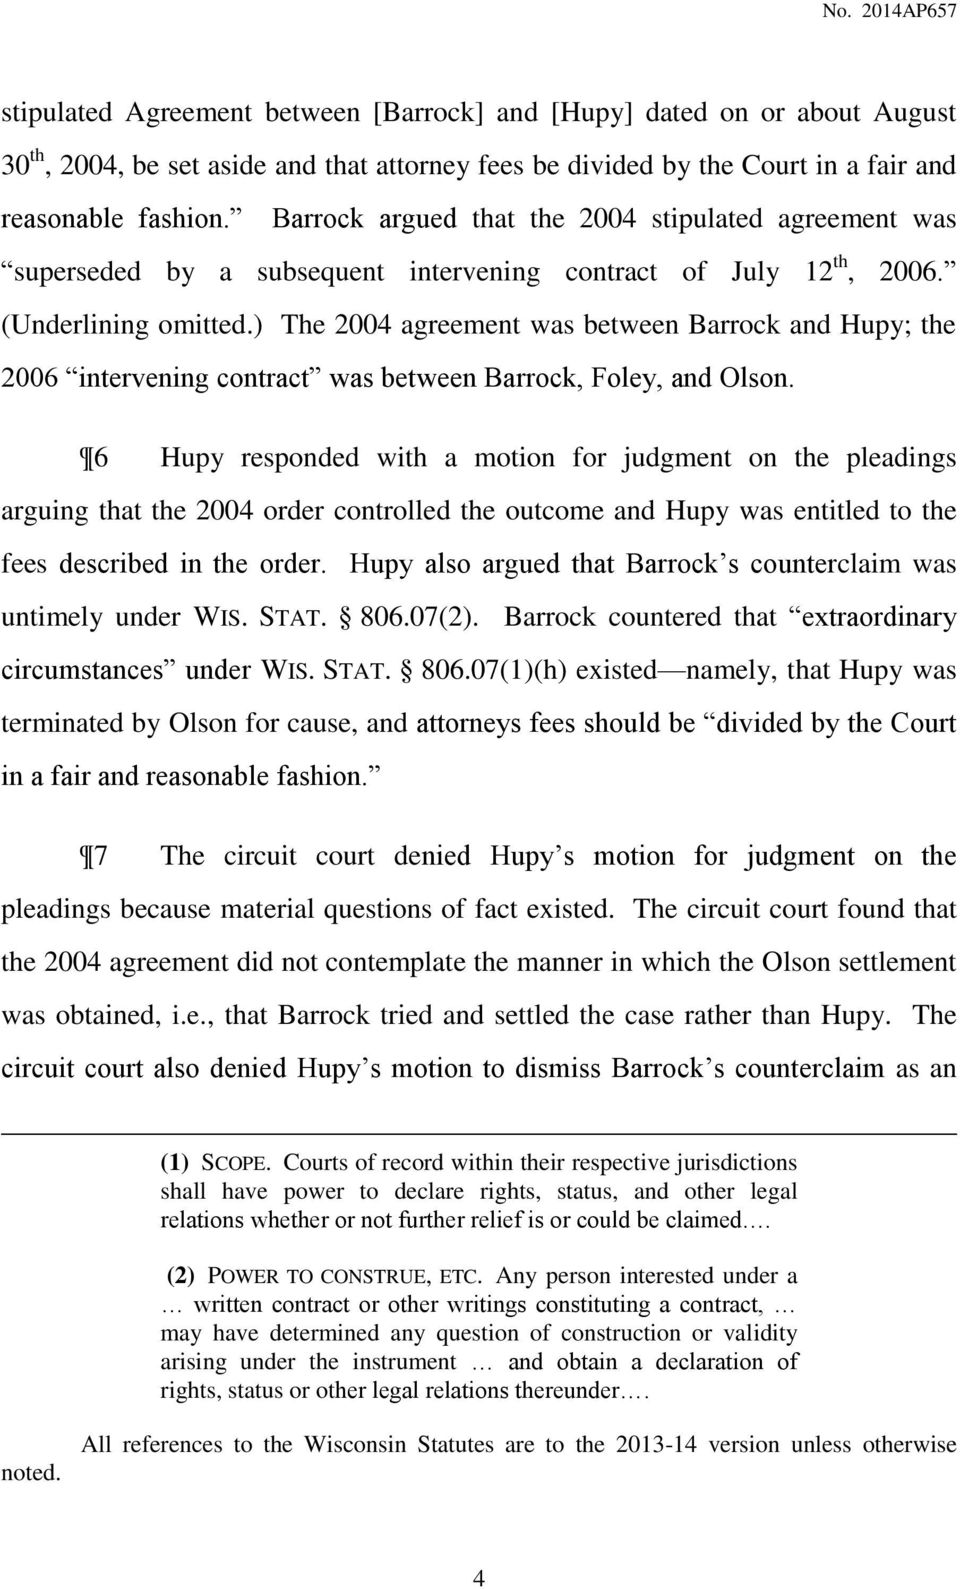 ) The 2004 agreement was between Barrock and Hupy; the 2006 intervening contract was between Barrock, Foley, and Olson.